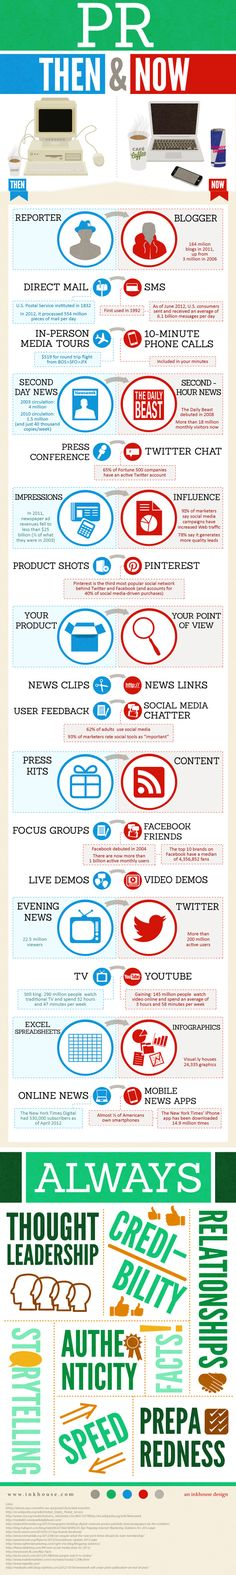 #PR Then and Now